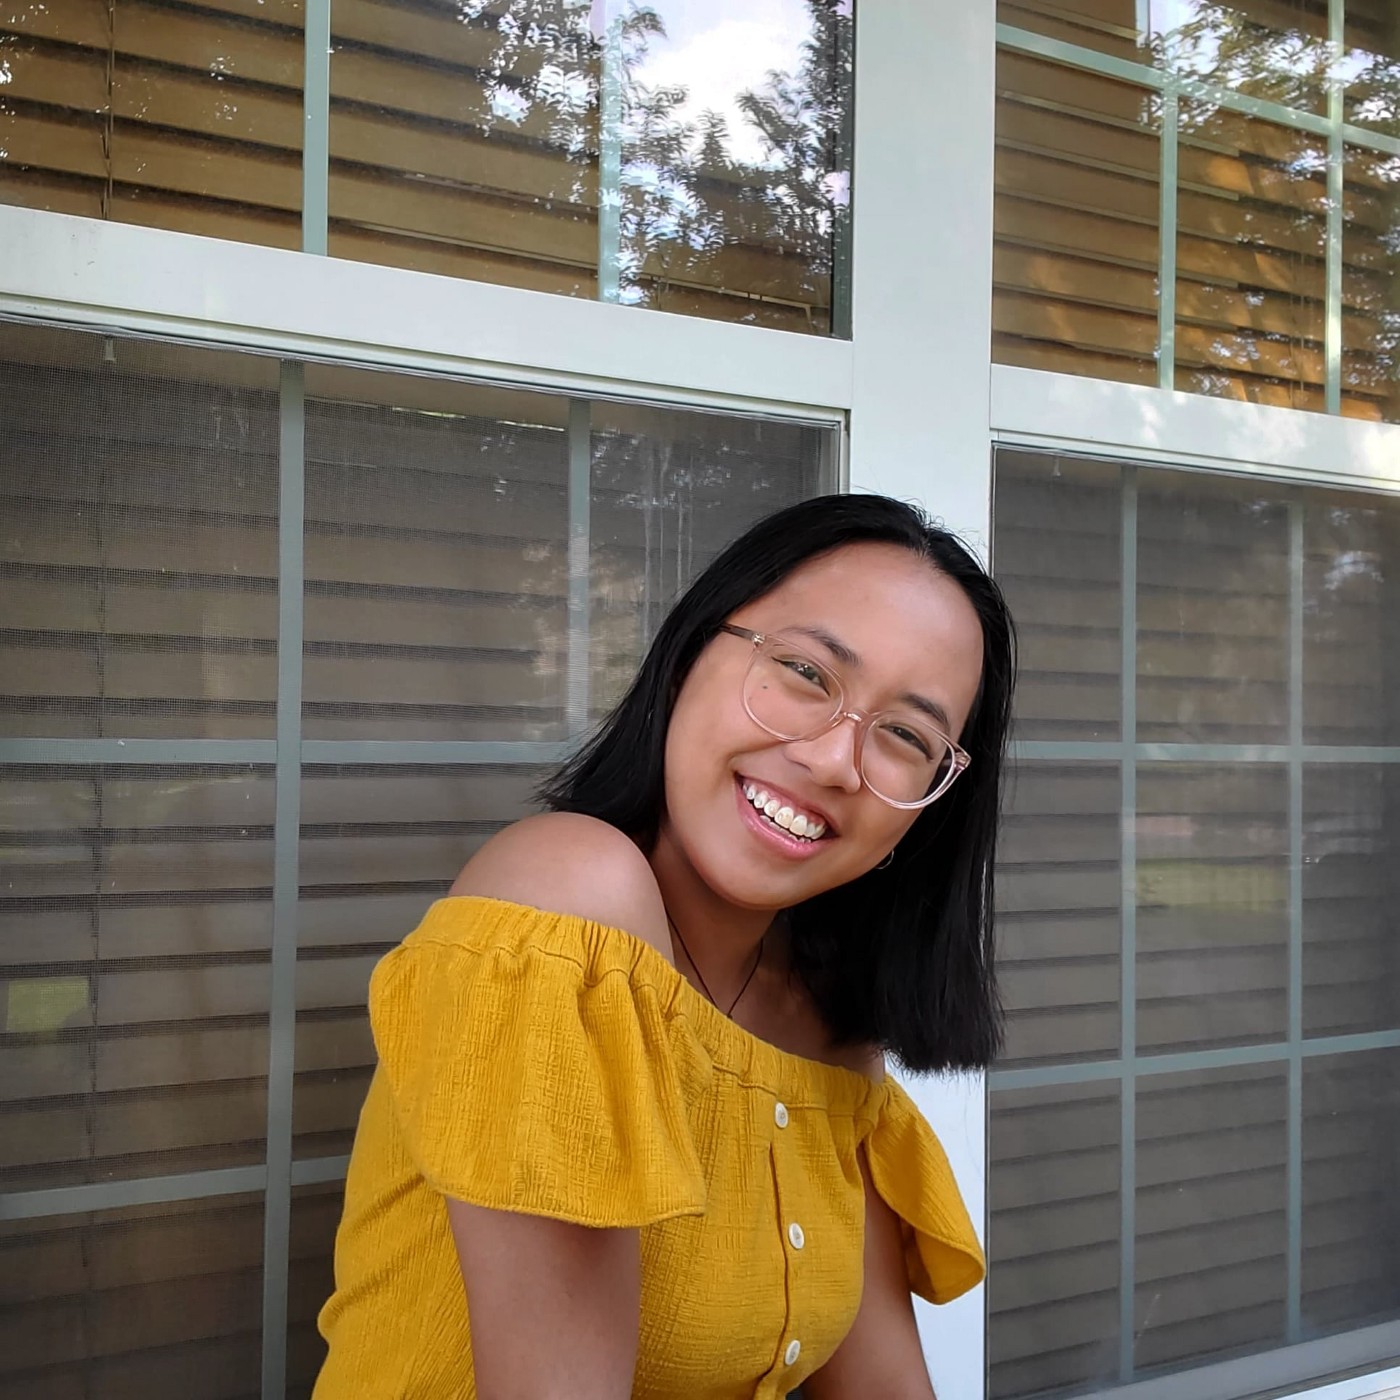 A girl in a yellow top smiles while sitting outside.